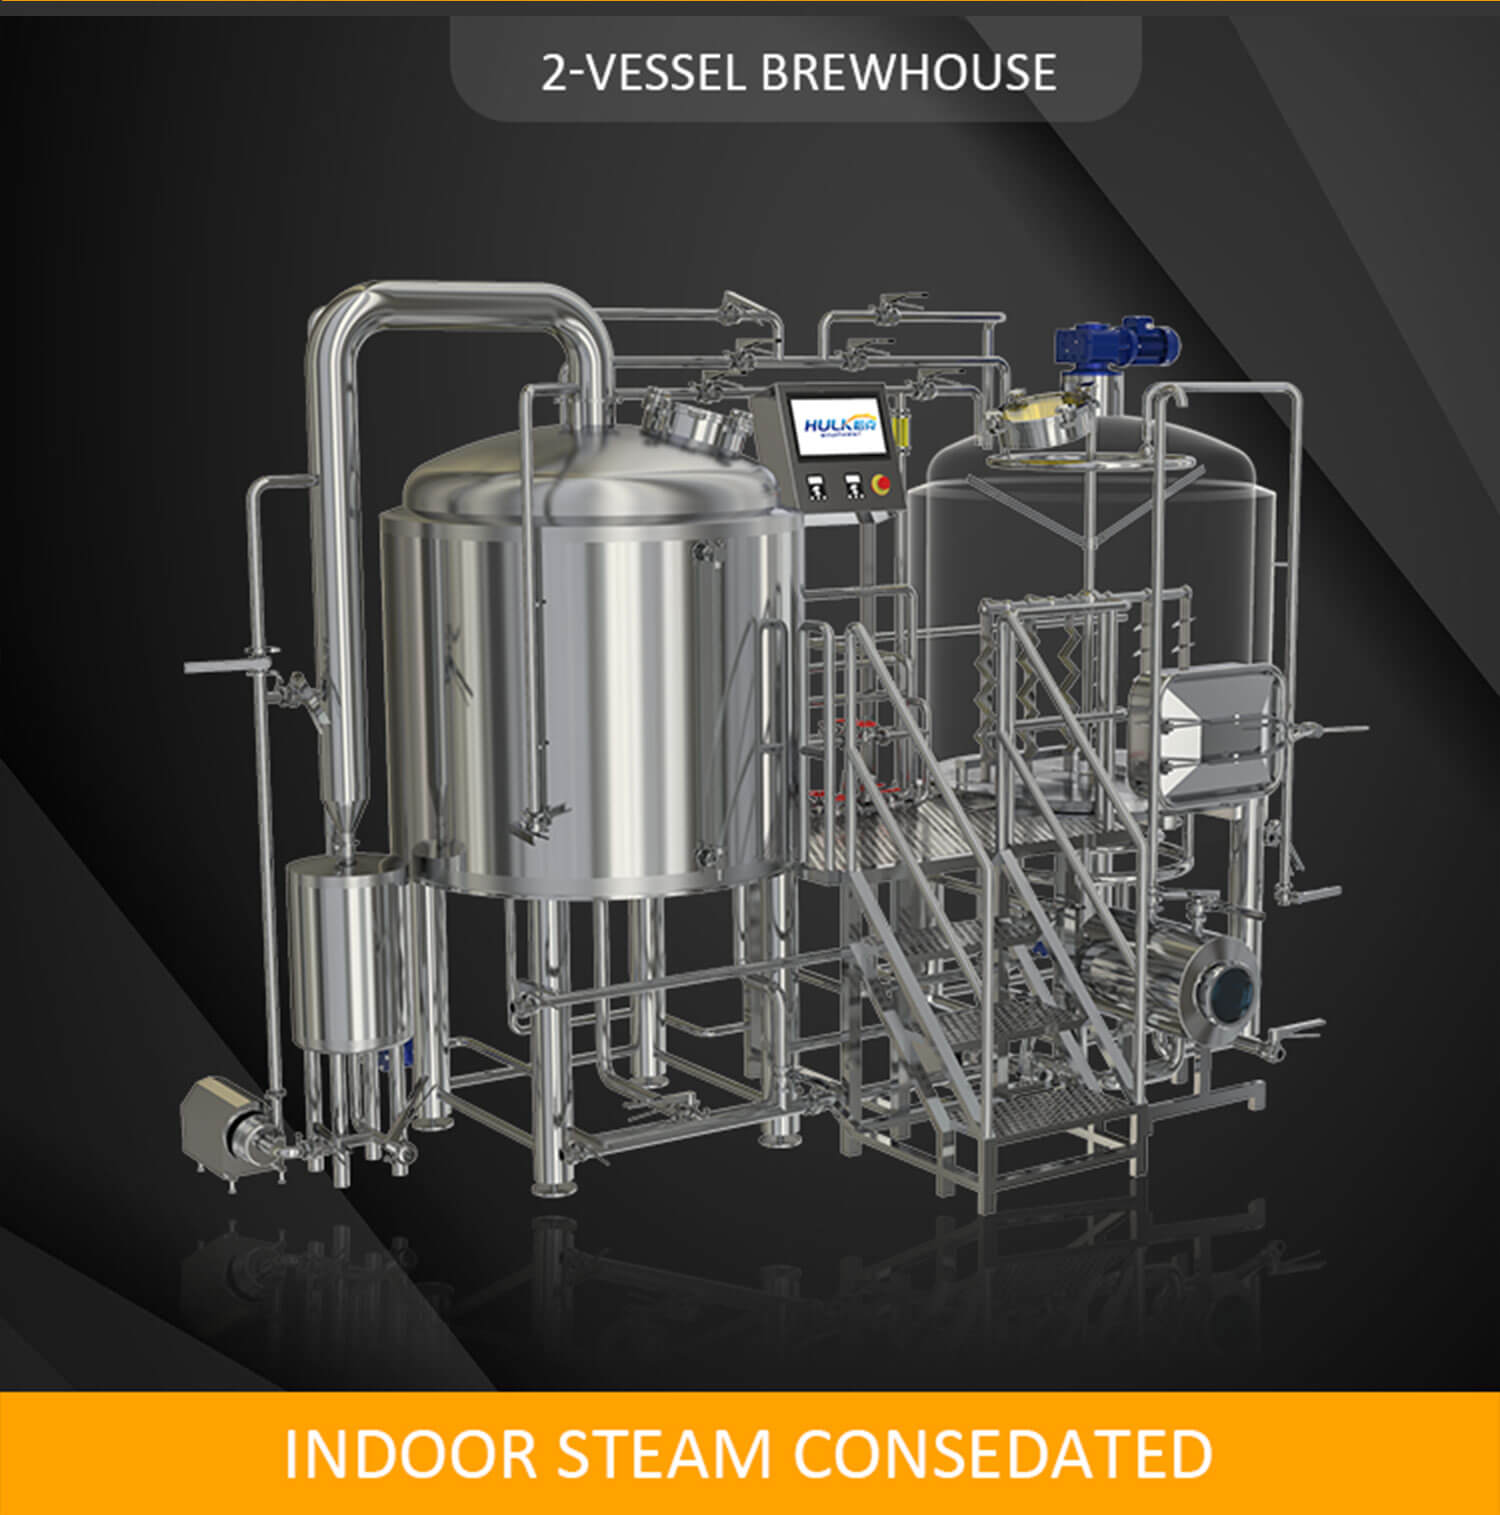 HULK BEER BREWHOUSE 2 VESSEL 3 VESSEL BREWHOUSE